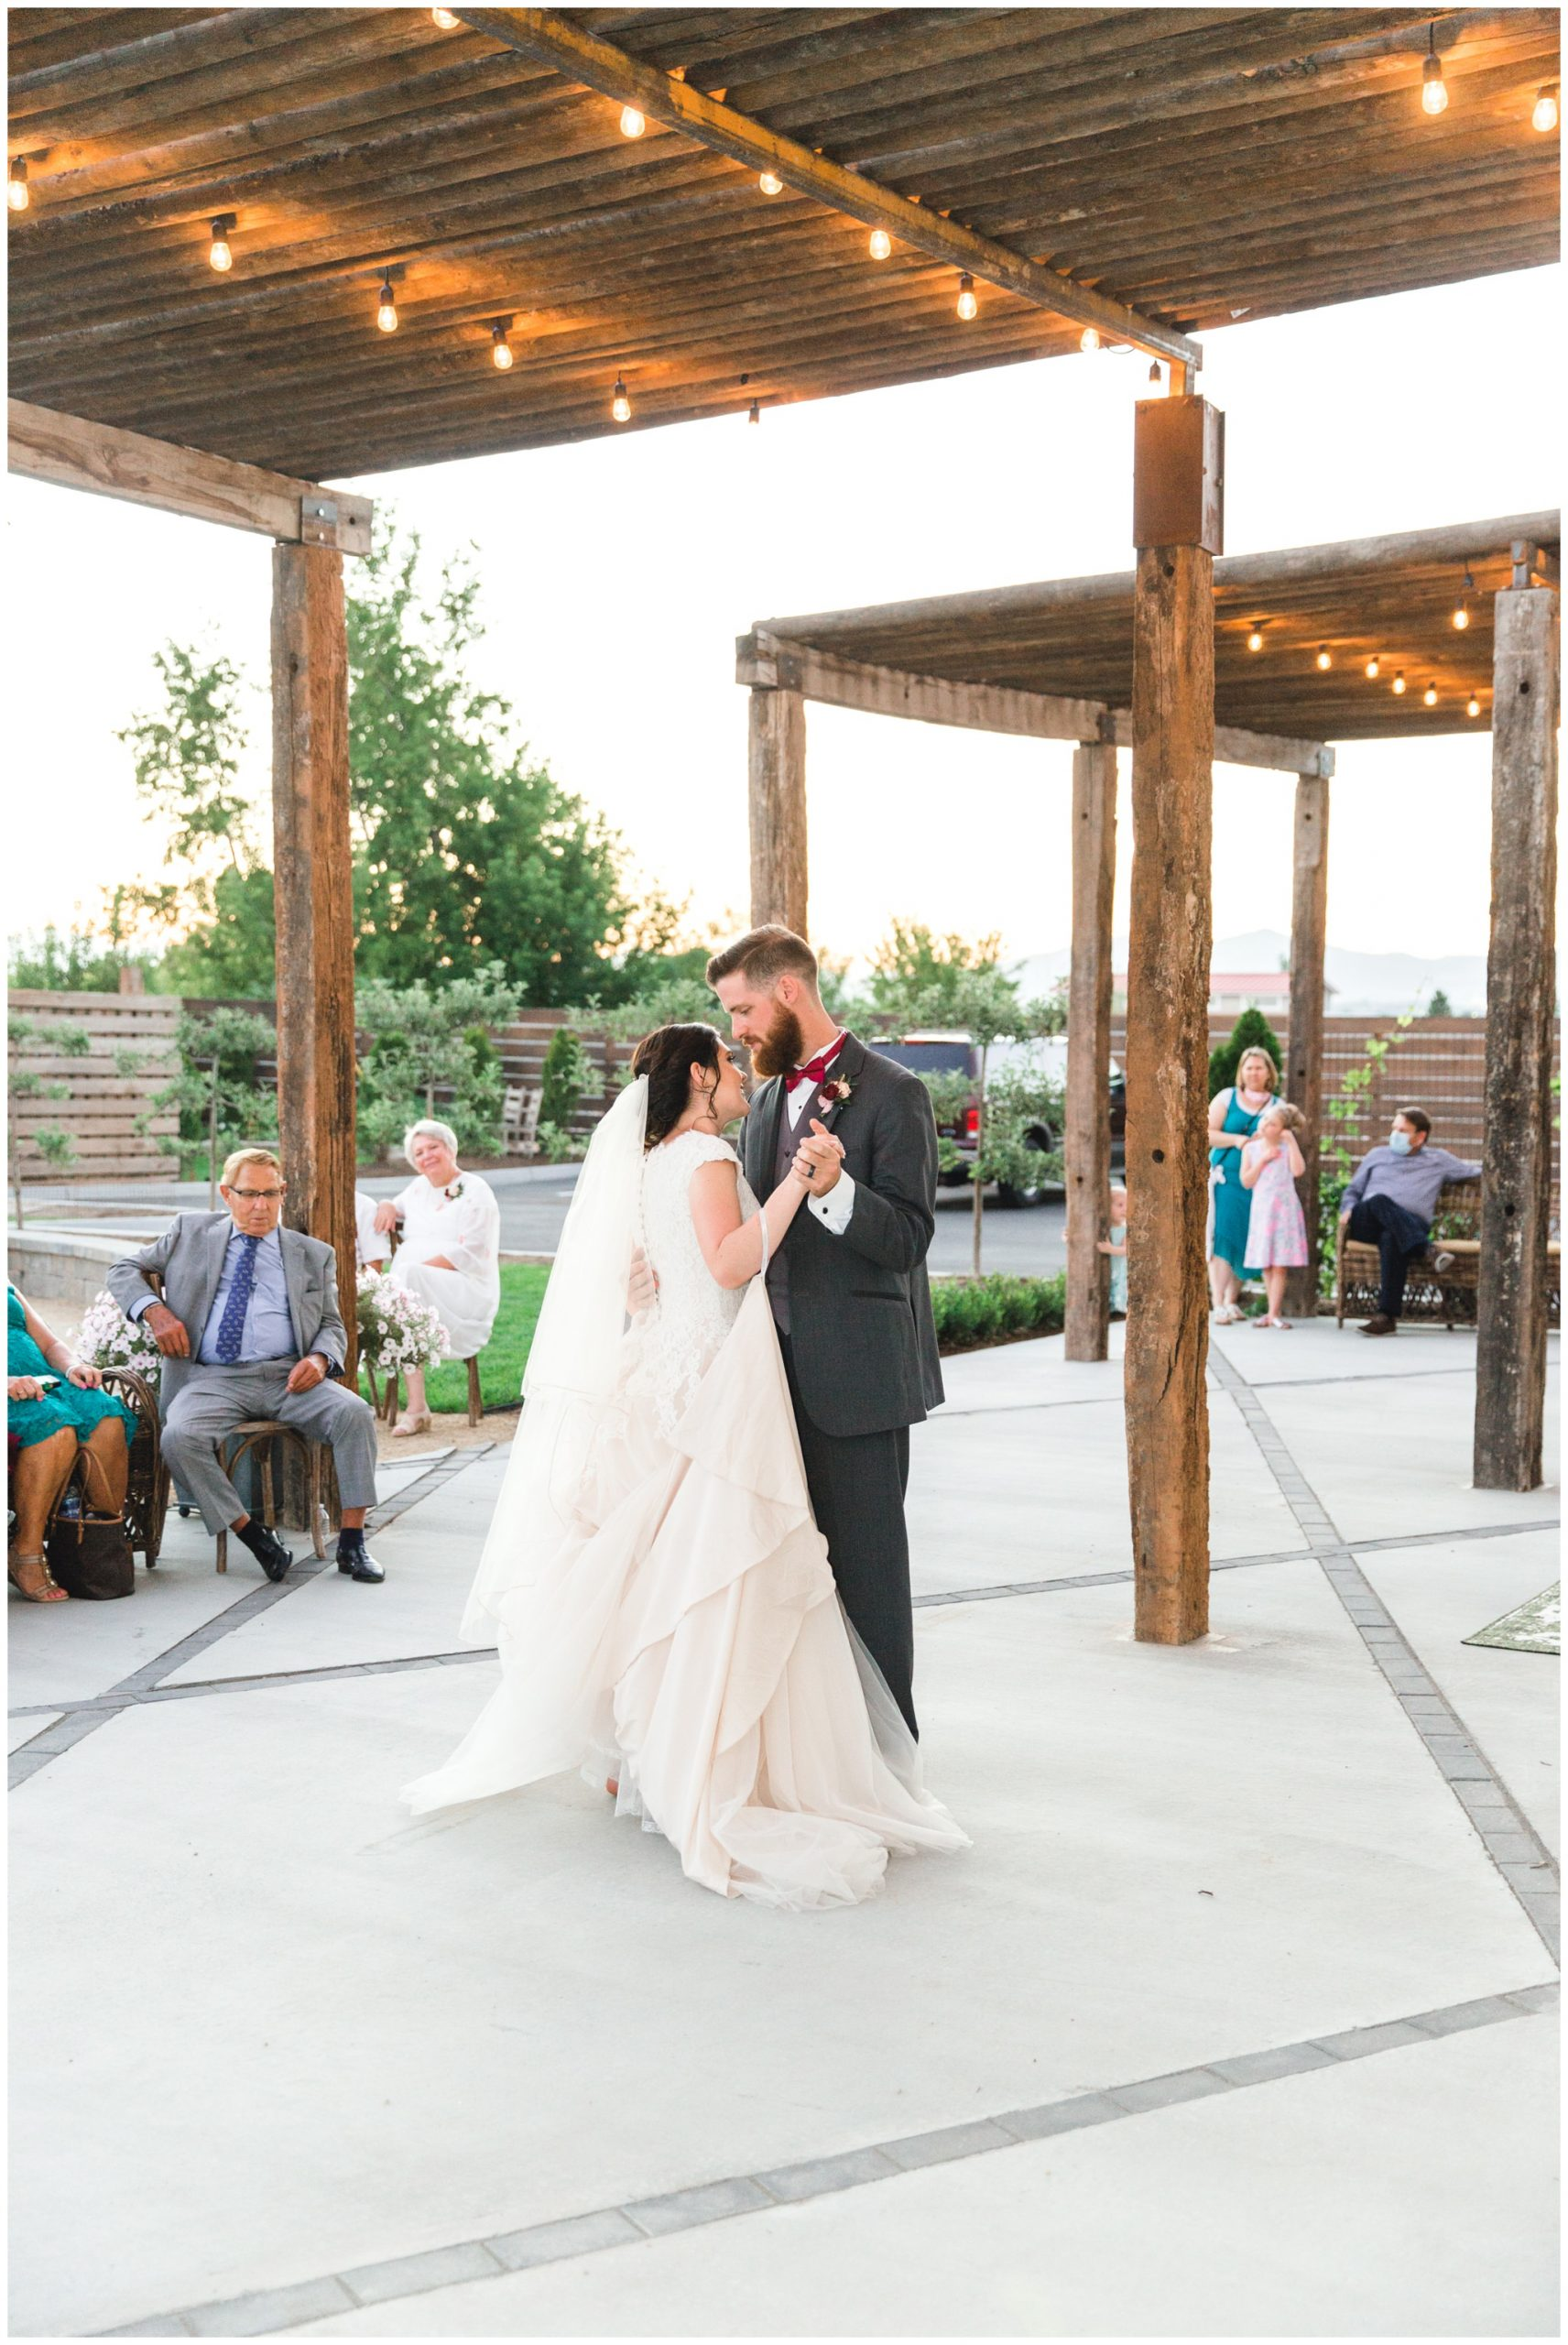 Bride and groom sharing their first dance as husband and wife at their wedding reception in Lindon Utah